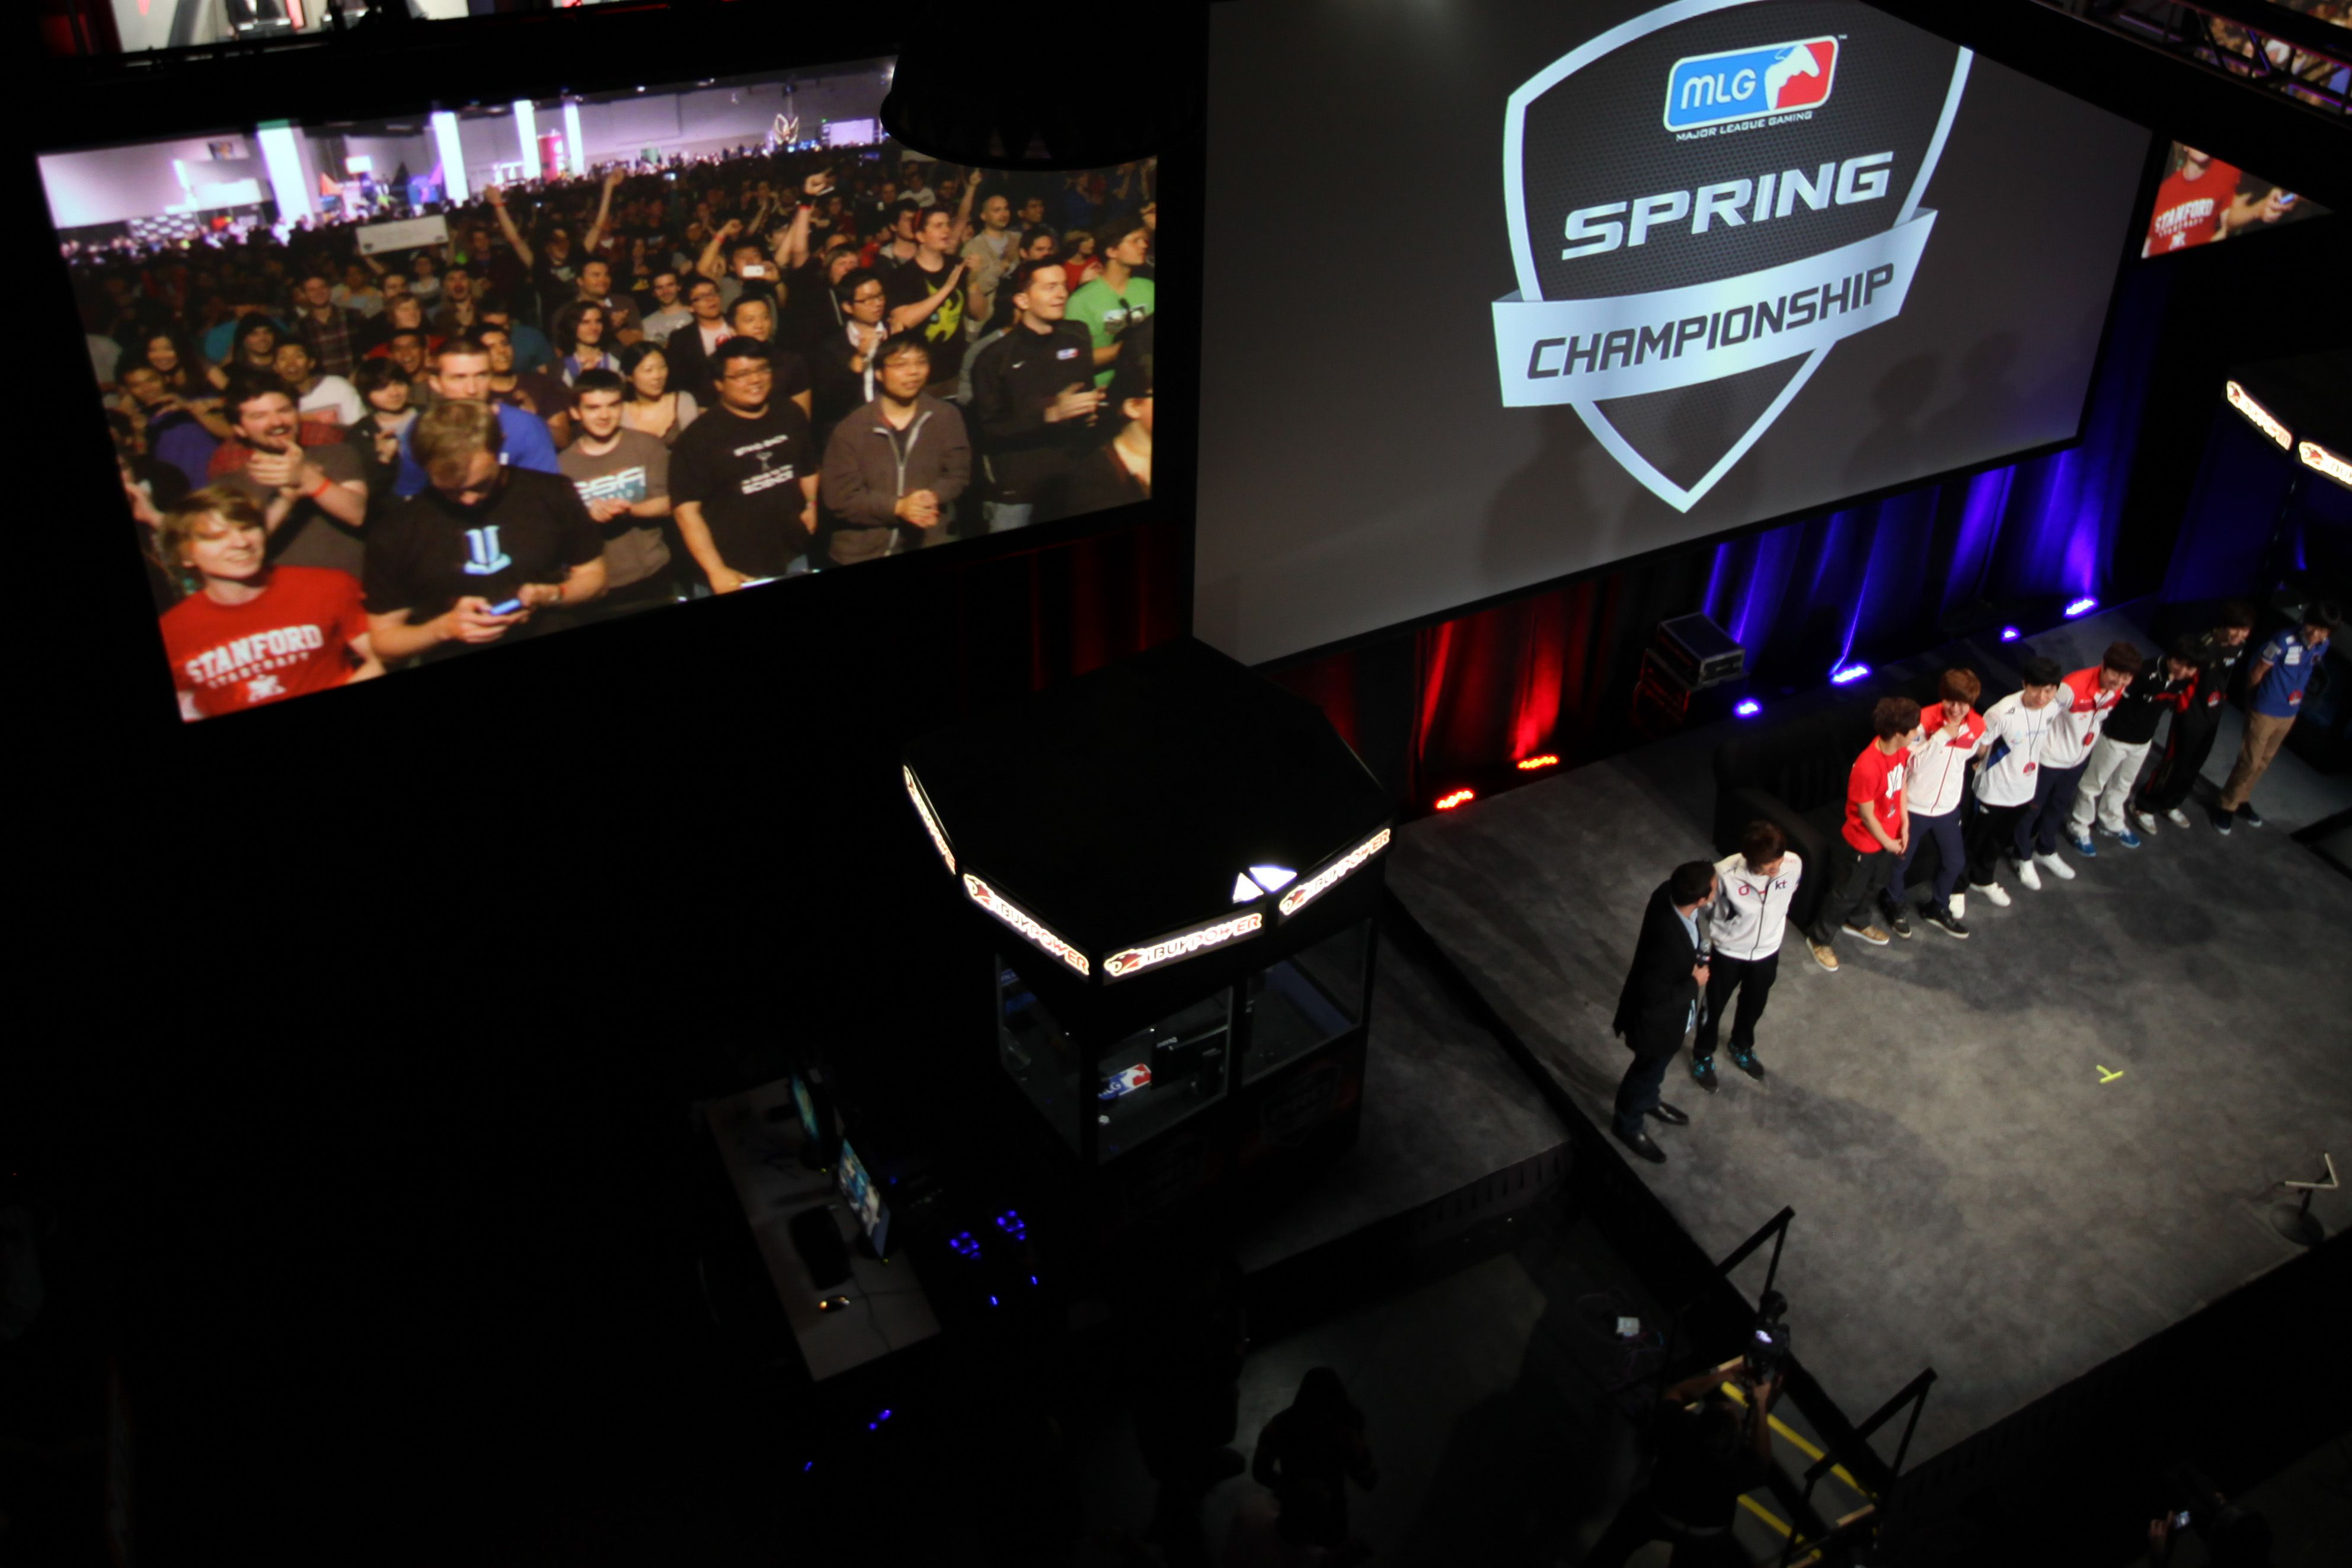 cbs has a clear path to broadcast major league gaming on tv this